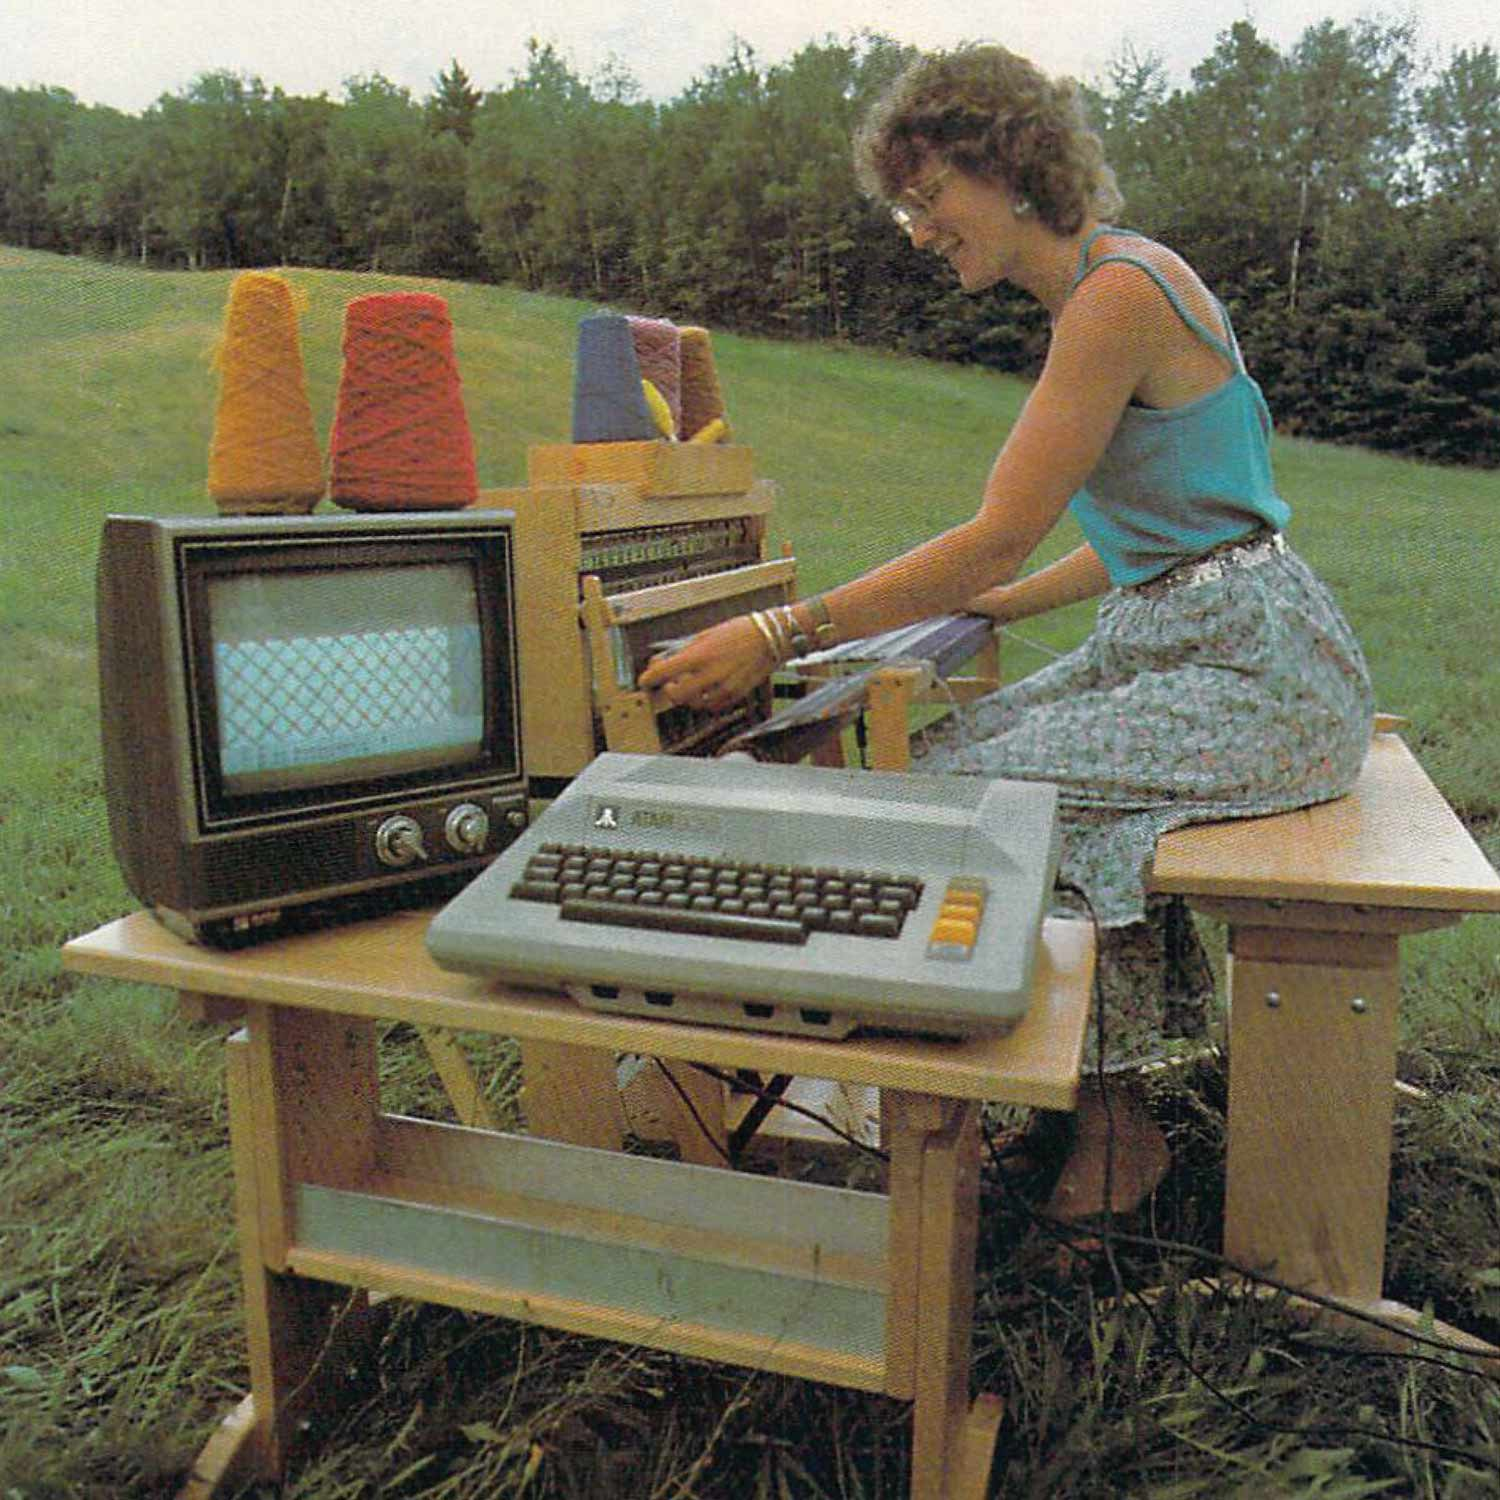 Retro image of Janice Laurie in a field with a tv monitor and typewriter connected to a weaving loom.